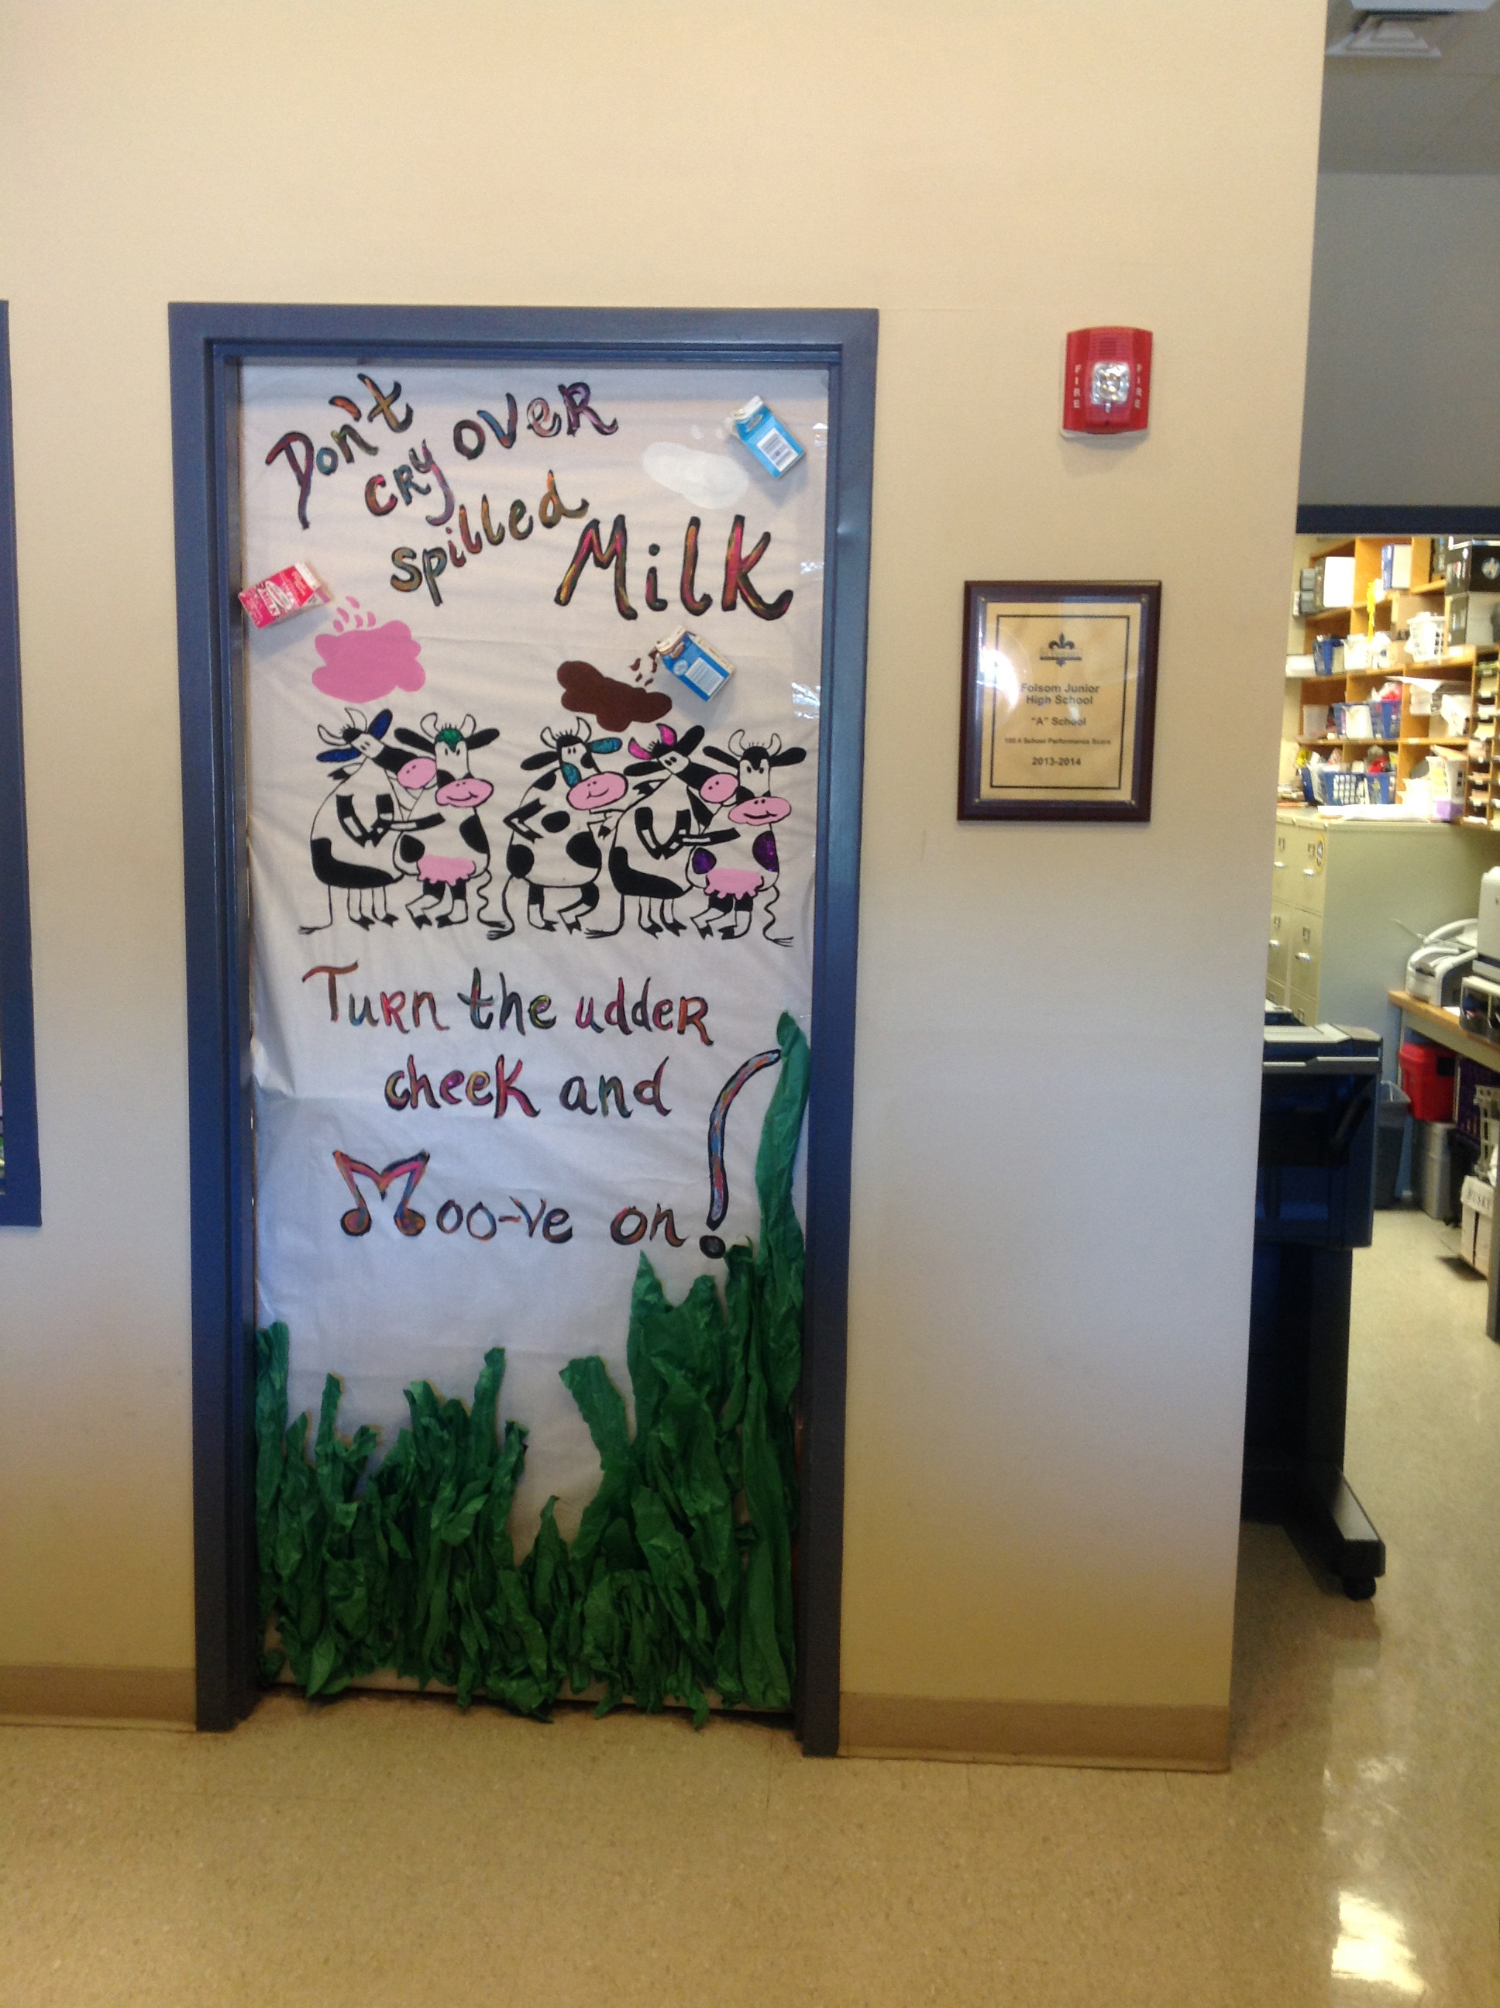 Folsom Jr. High School's Milk Day Door Decorating Contest Image 1